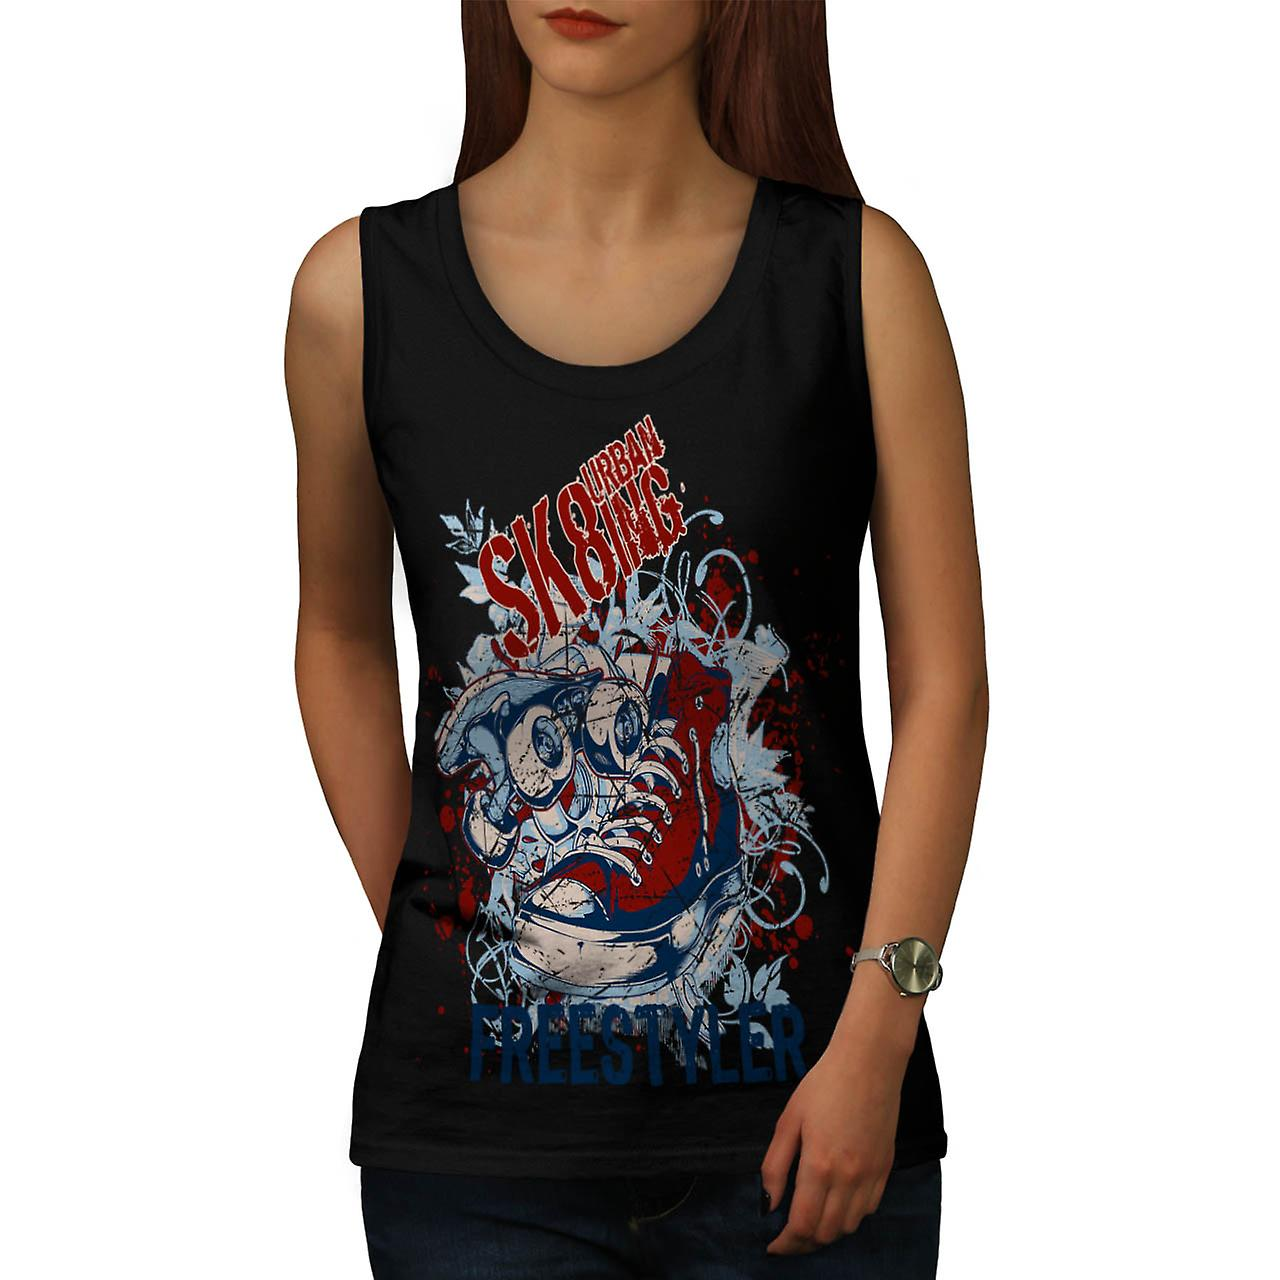 Urban Skate Freestyle Skateboard Frauen Tank-Top schwarz | Wellcoda